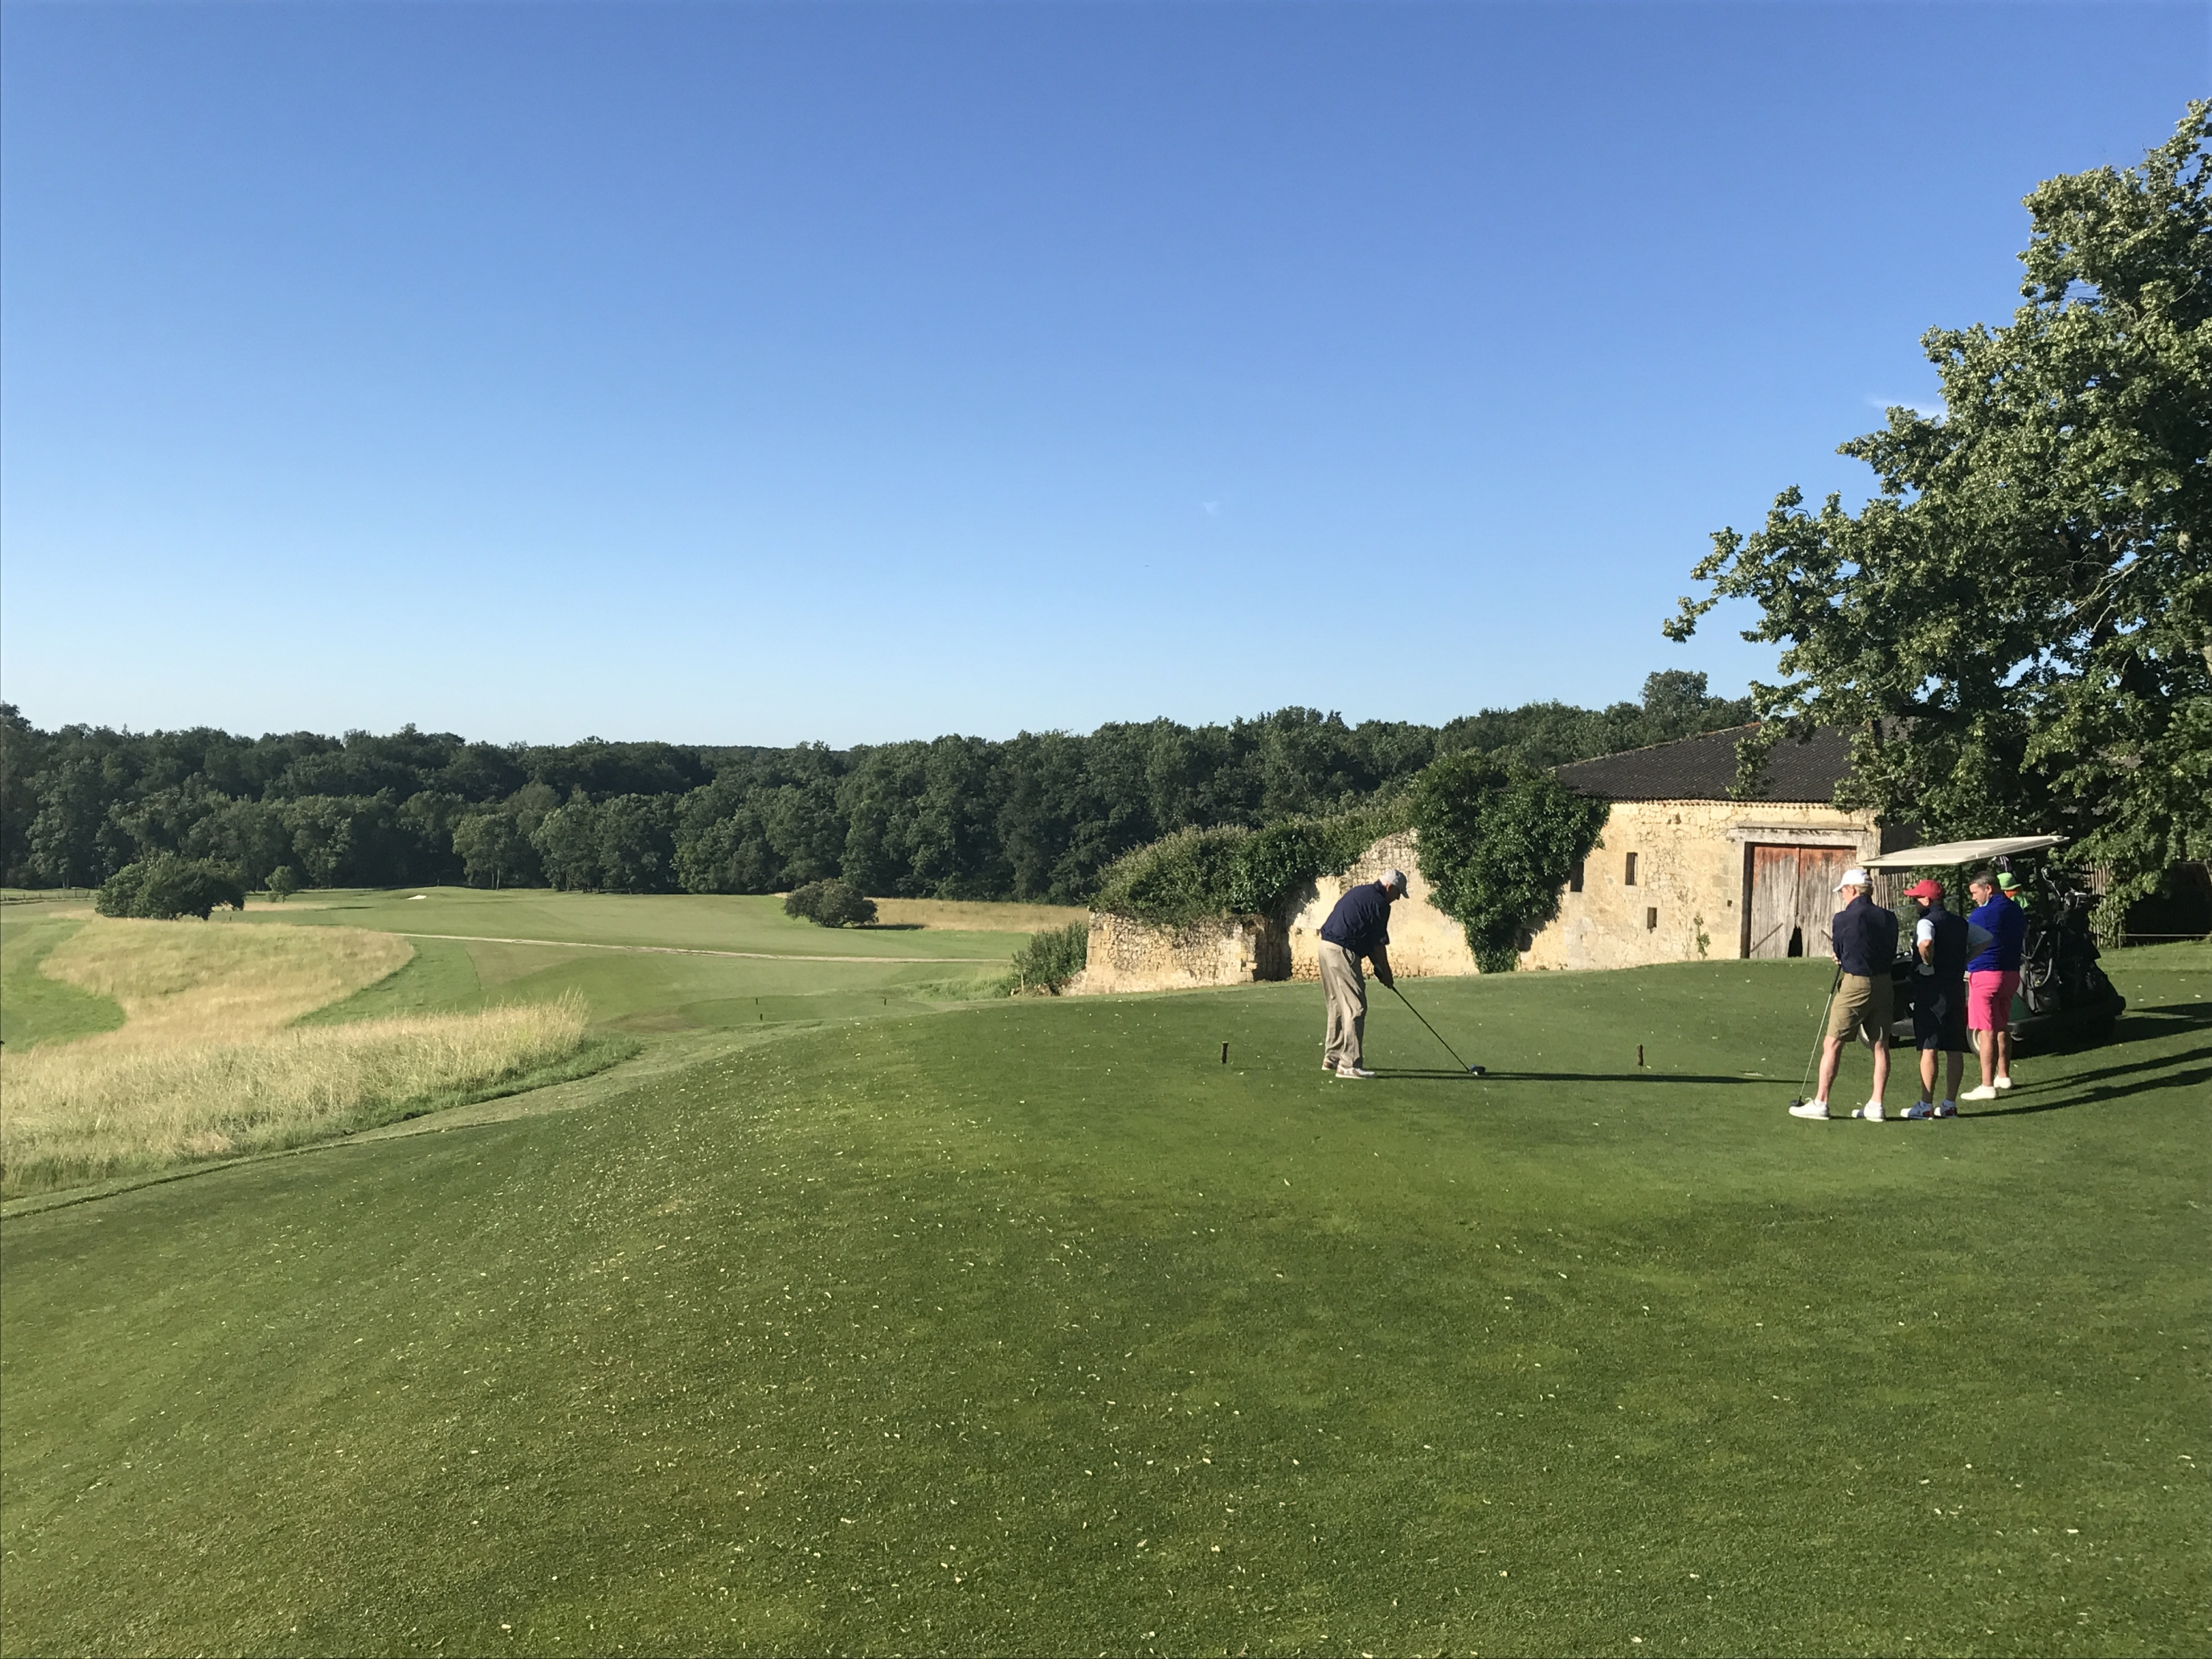 Our Hosts, The Mourgue D'algue Family, Put Together An Elegant Weekend Of  Golf, Food, And Plenty Of Delicious Wine. Congratulations To Our Friends  Alfonso